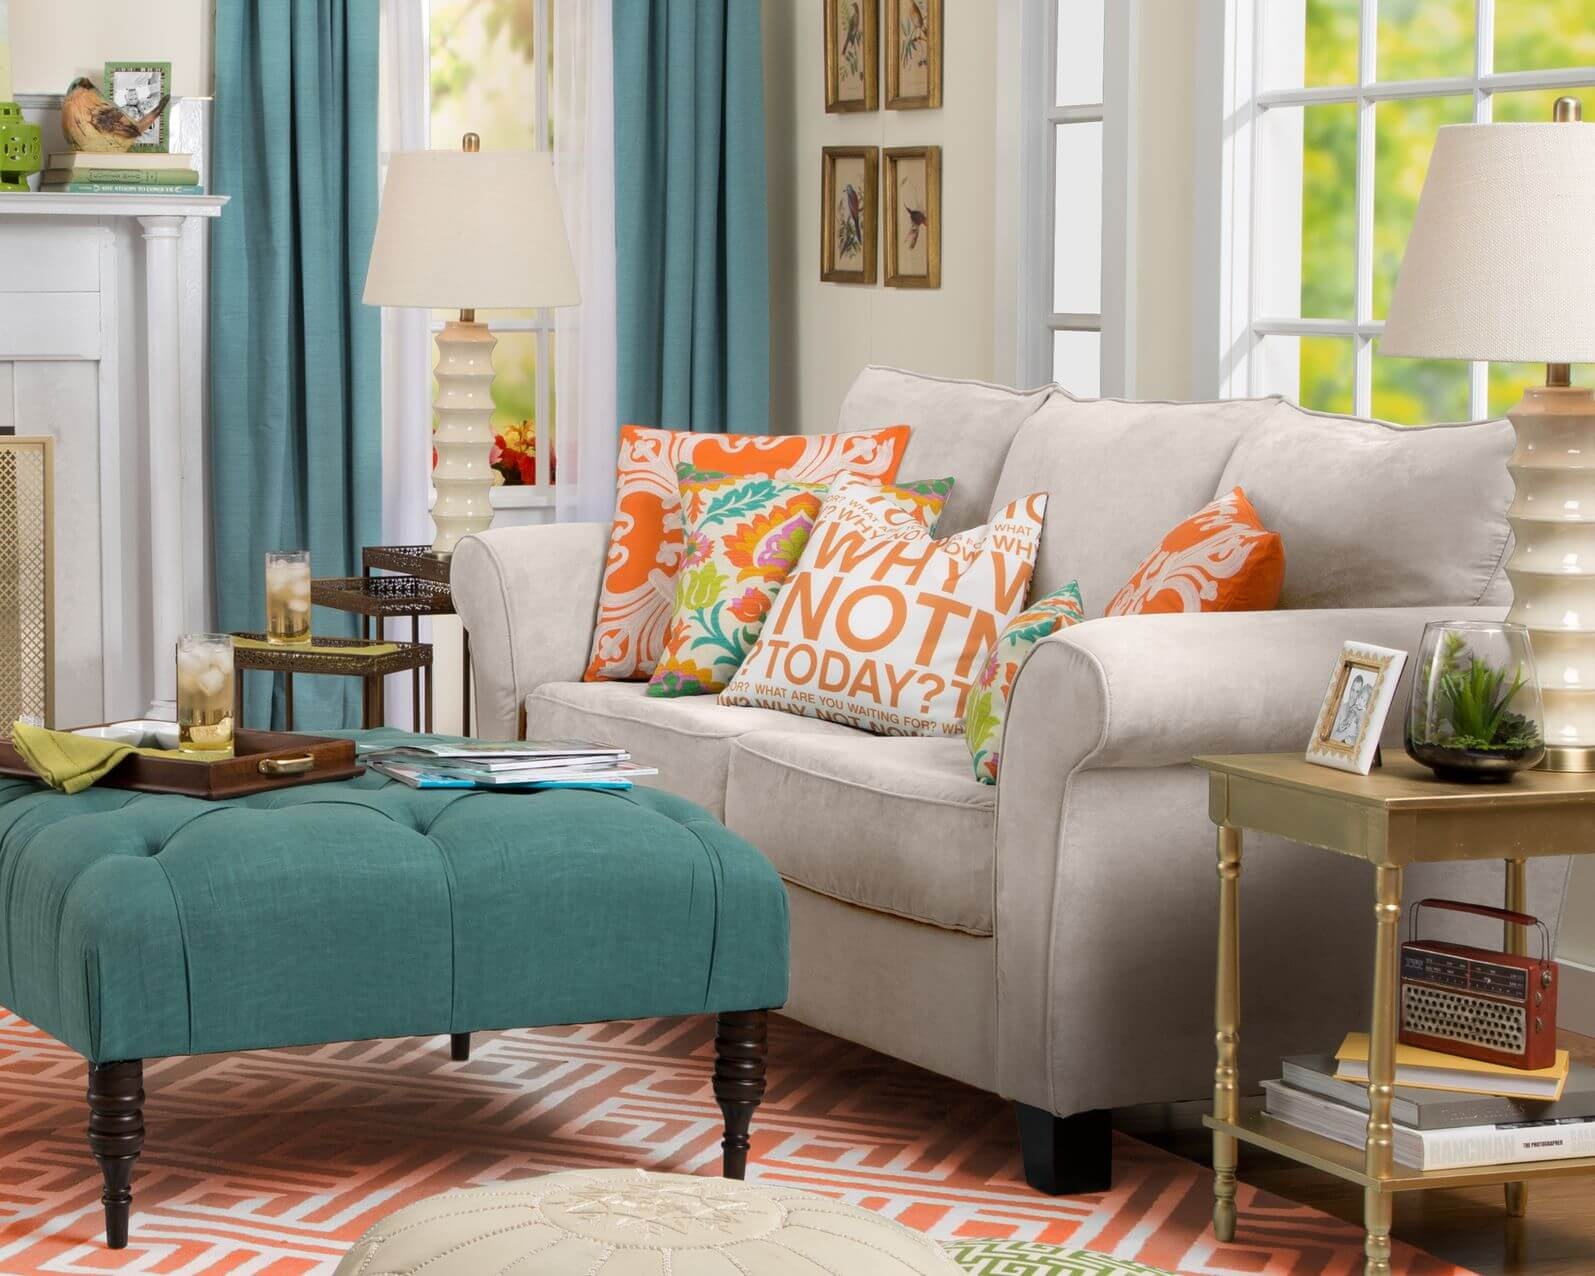 High Quality Bright, Contrasting Color Patterns Throughout This Living Room, Featuring  Neutral Toned Sofa Next To